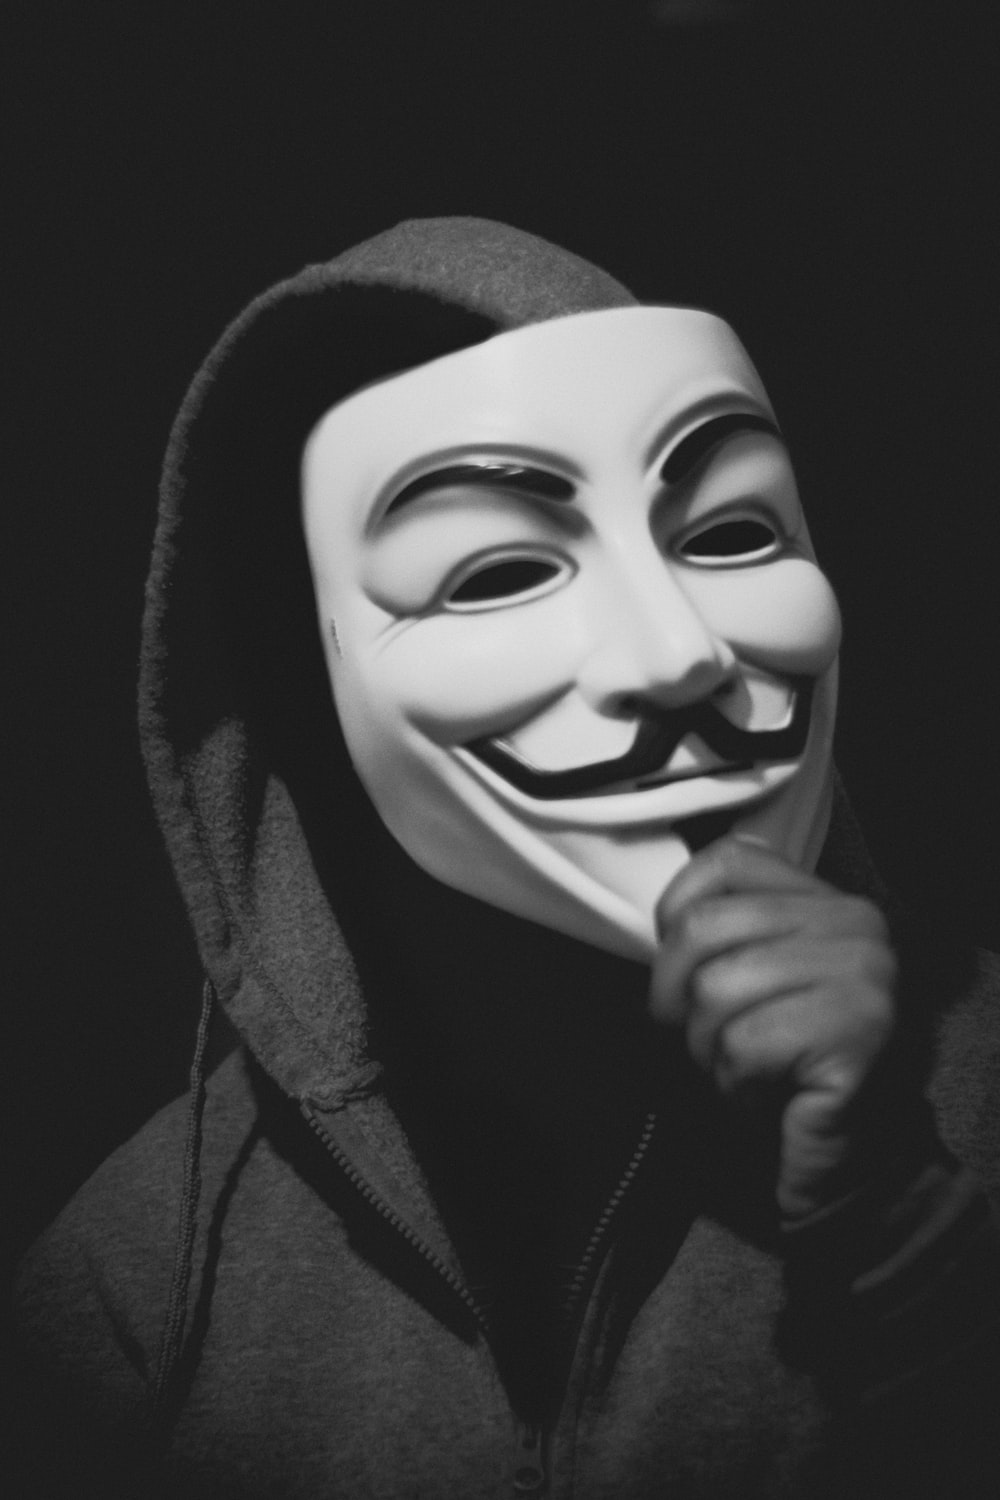 person holding Guy Fawkes mask